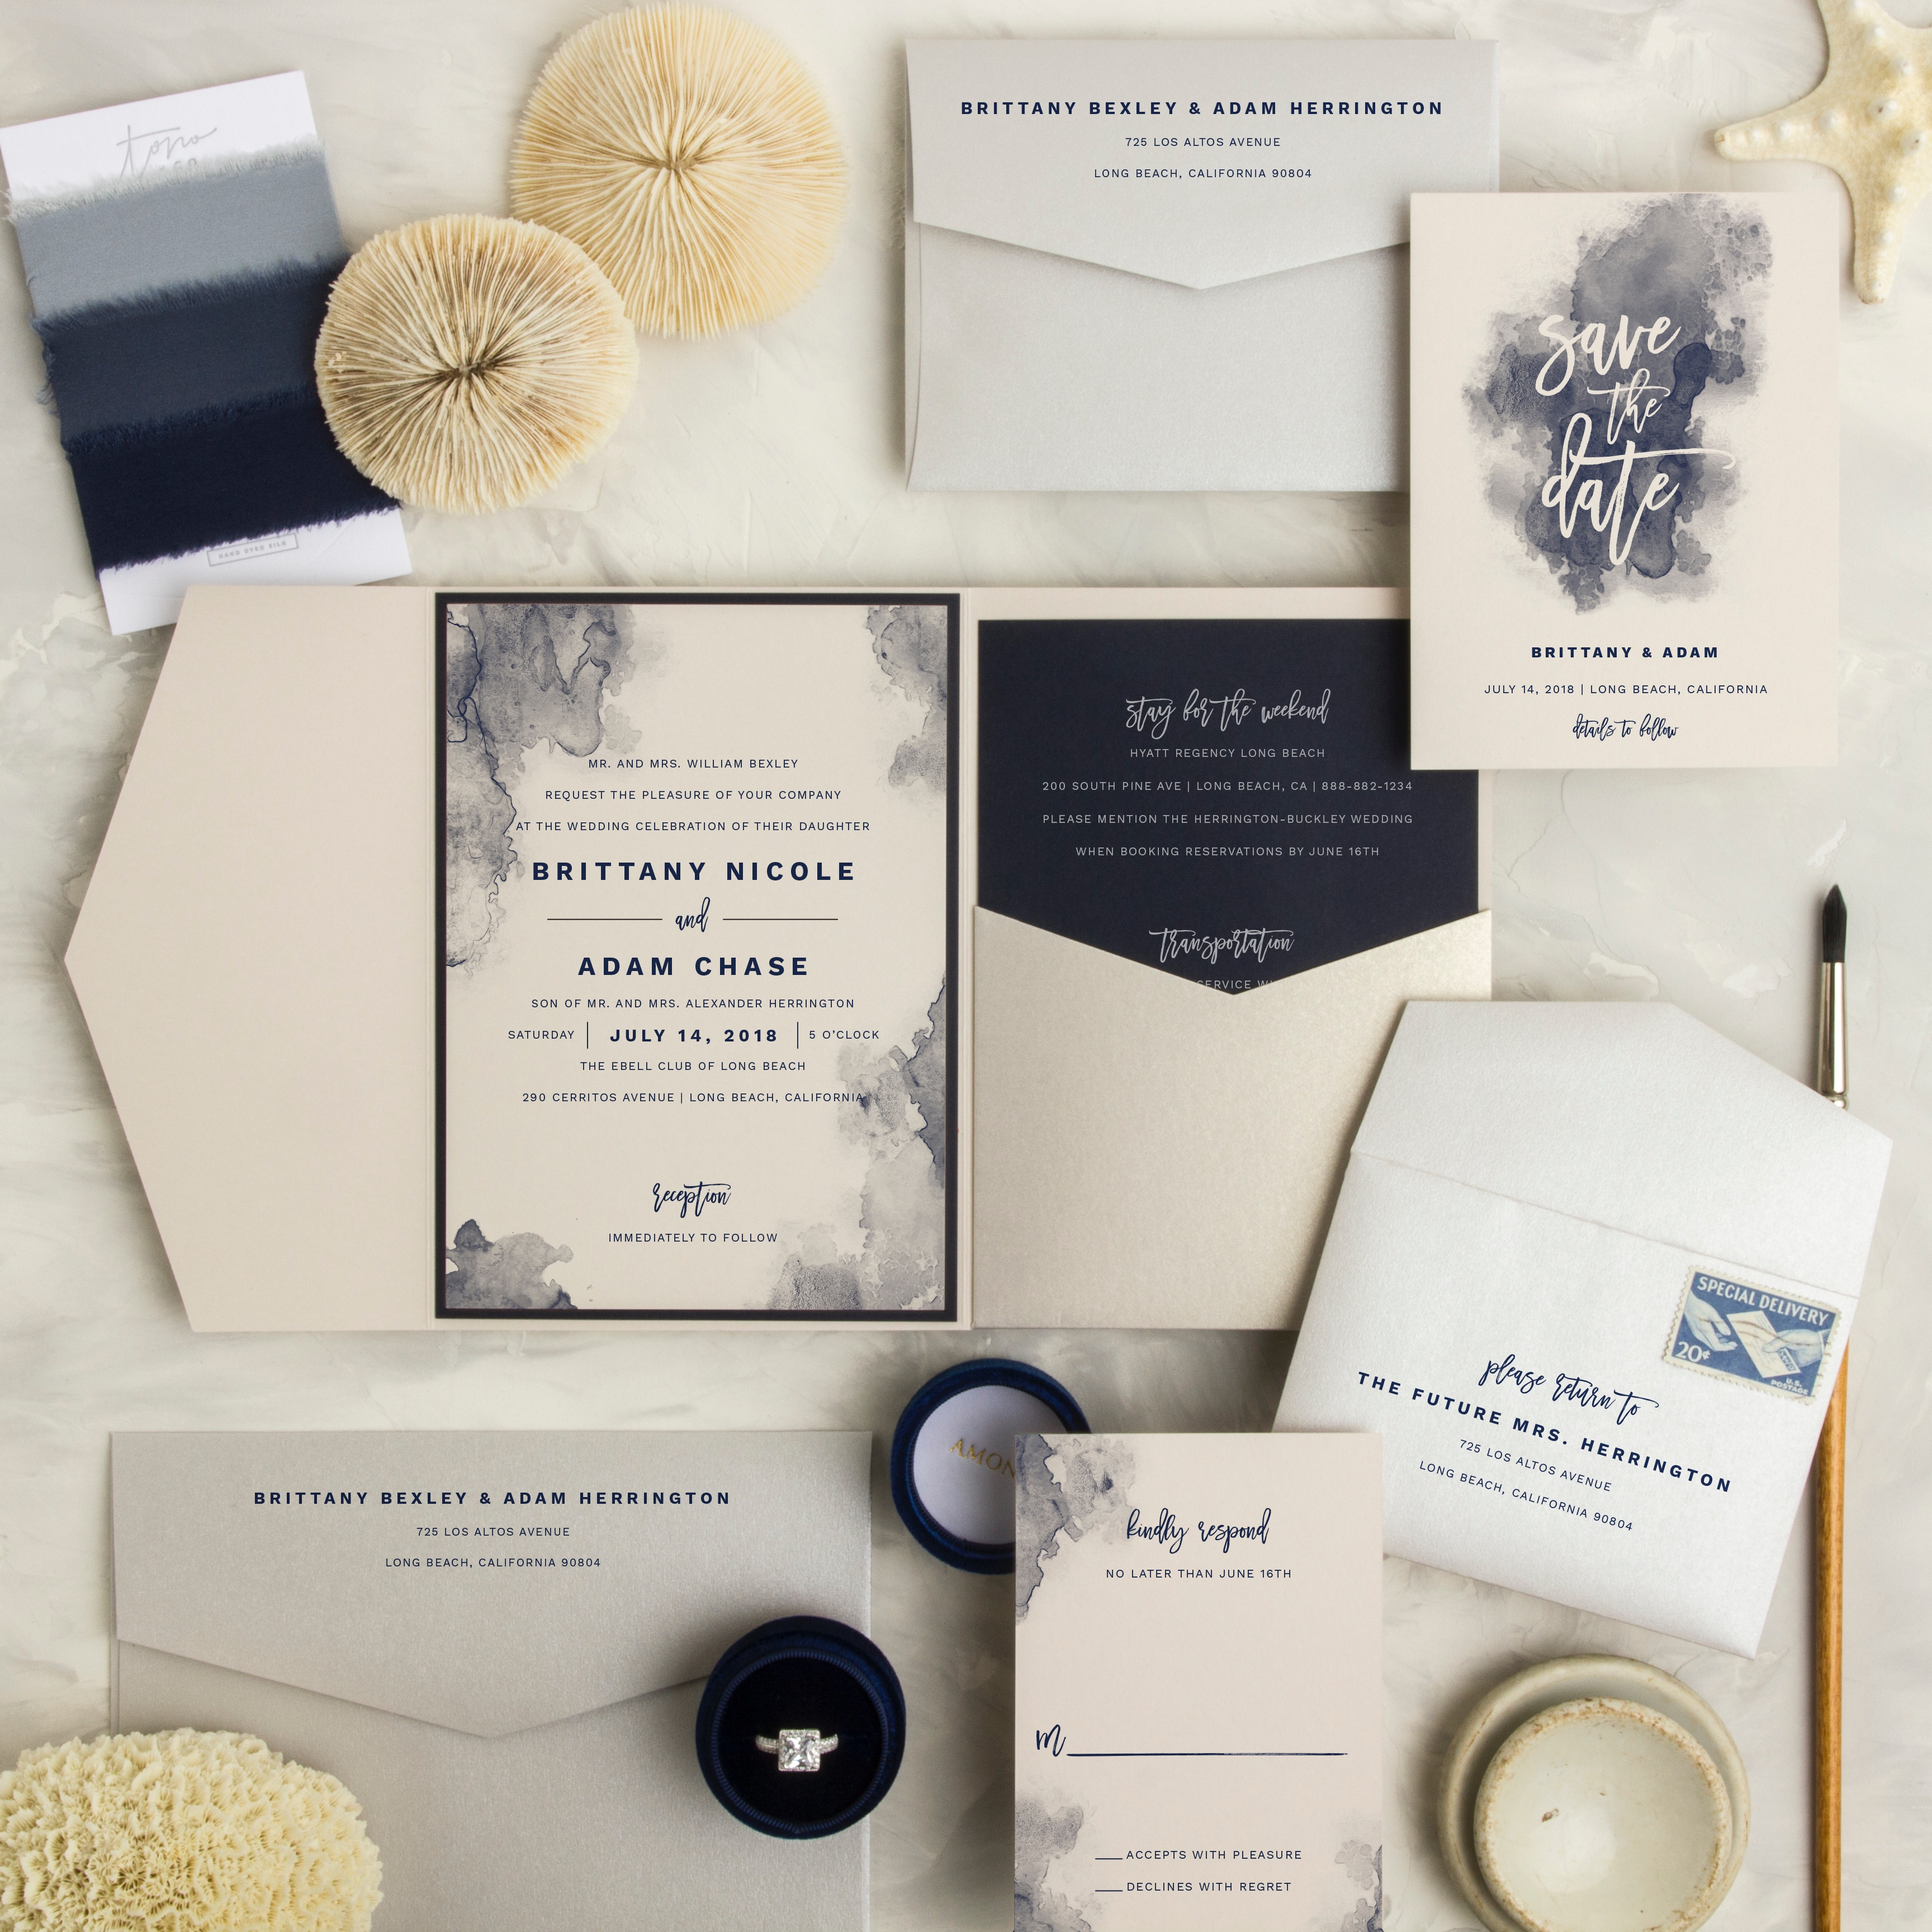 Aquarelle Wedding Invitation features beautiful blots of watercolor.  A dramatic invitation in navy and cream.